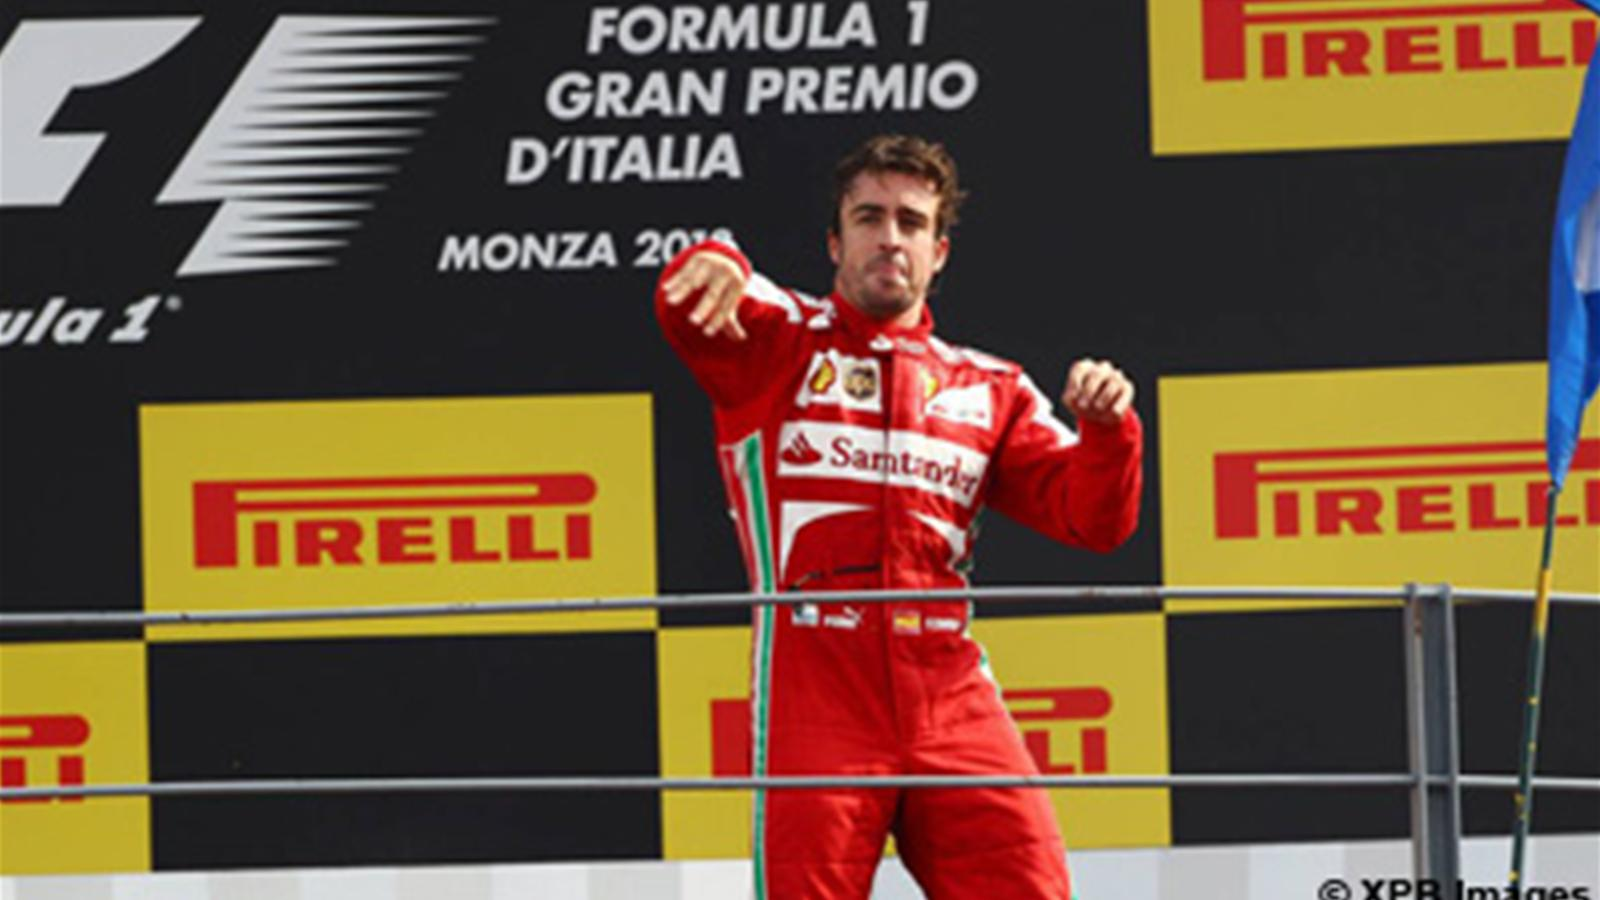 alonso voque ses chances de remporter le titre grand prix d 39 italie 2013 formule 1 eurosport. Black Bedroom Furniture Sets. Home Design Ideas